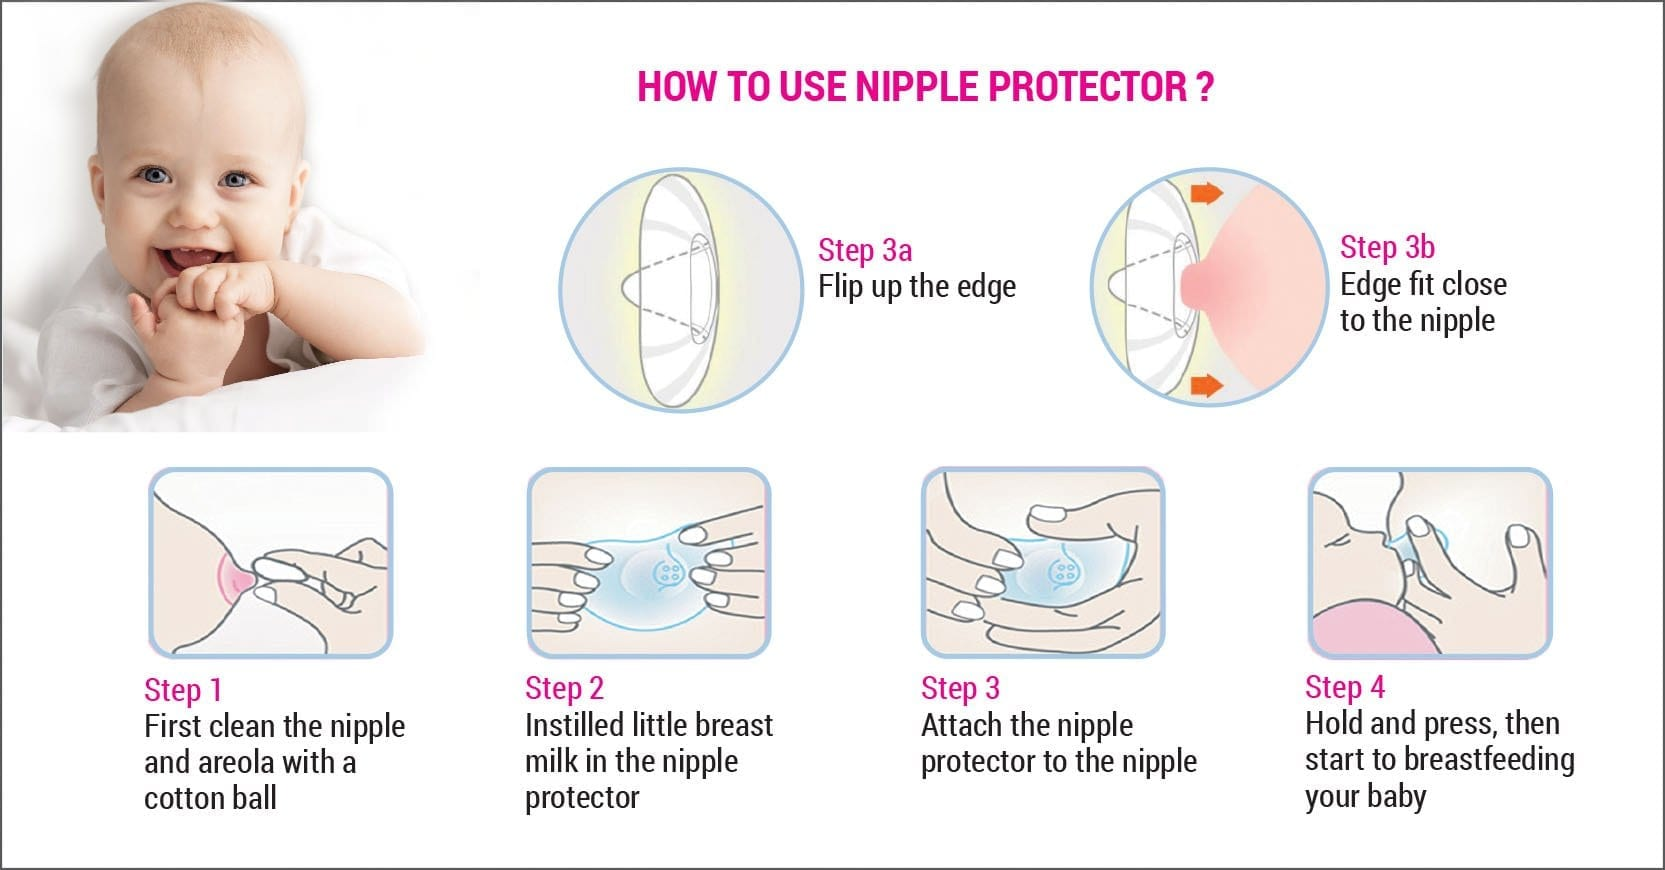 How to use nipple protector?